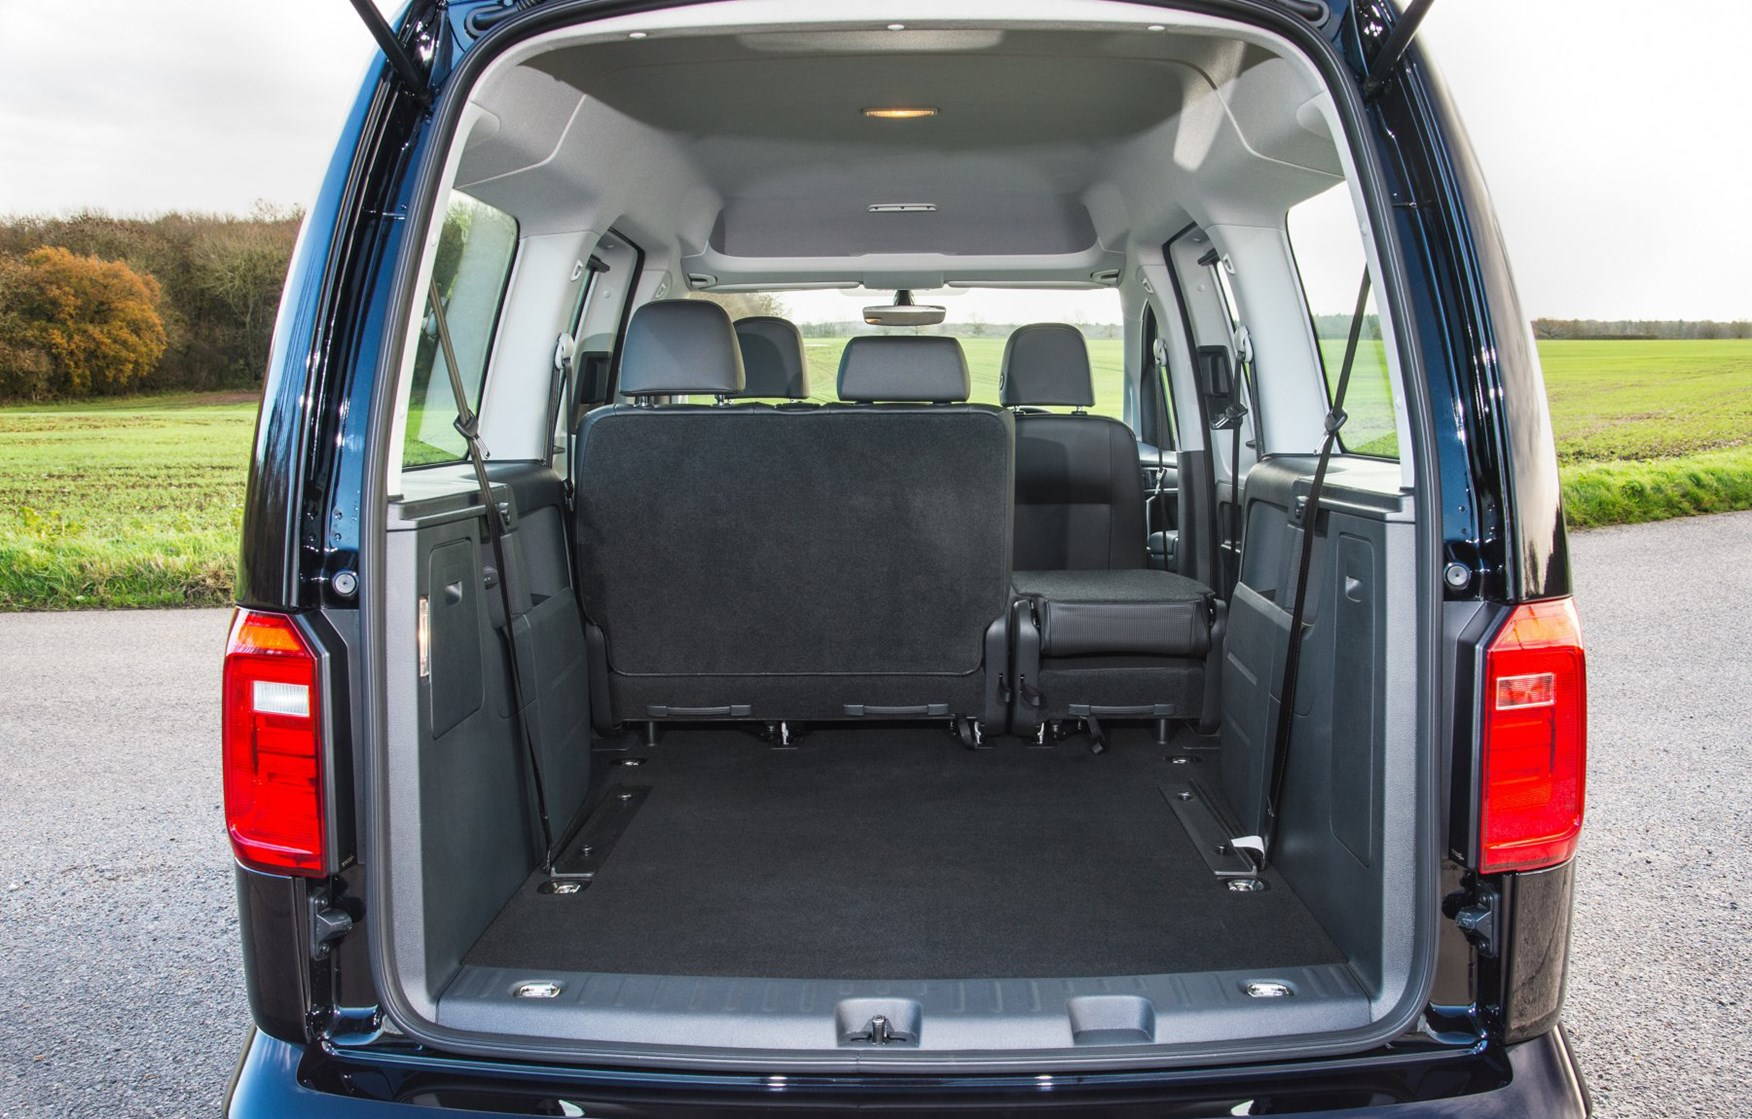 volkswagen caddy maxi life estate 2015 features equipment and accessories parkers. Black Bedroom Furniture Sets. Home Design Ideas